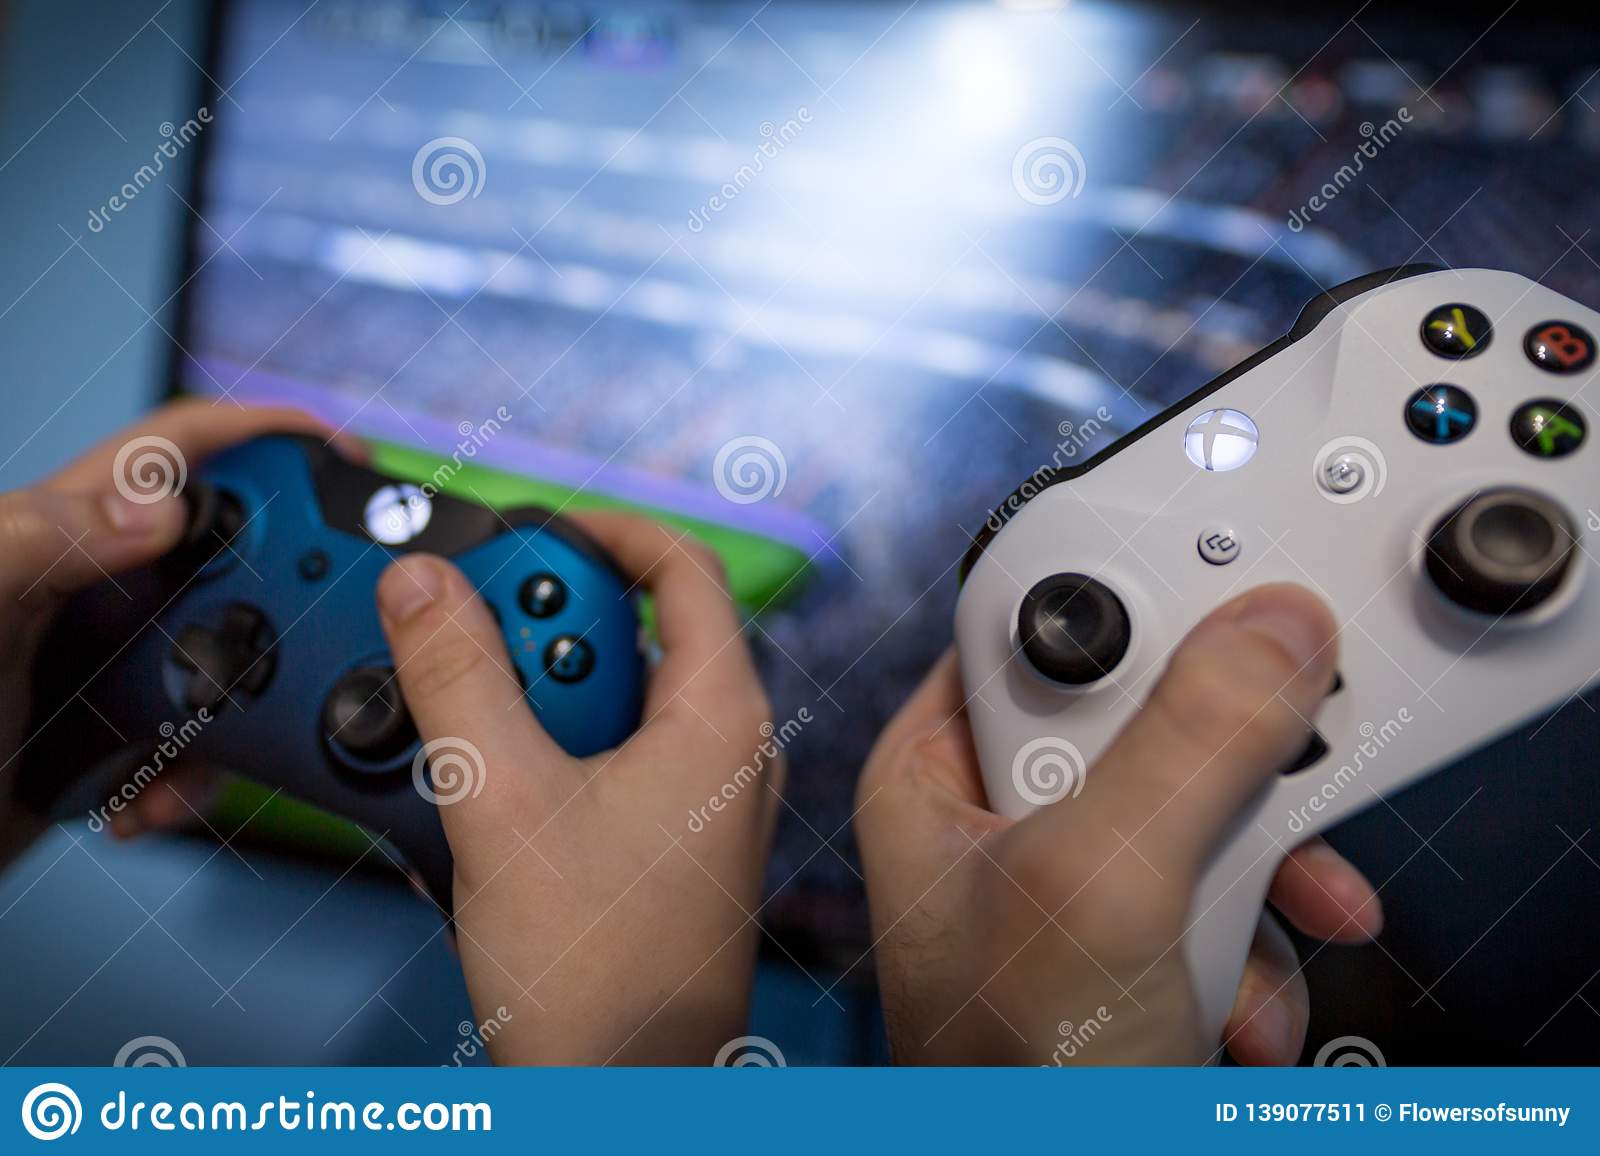 Can Xbox One Play With Xbox 360 Online